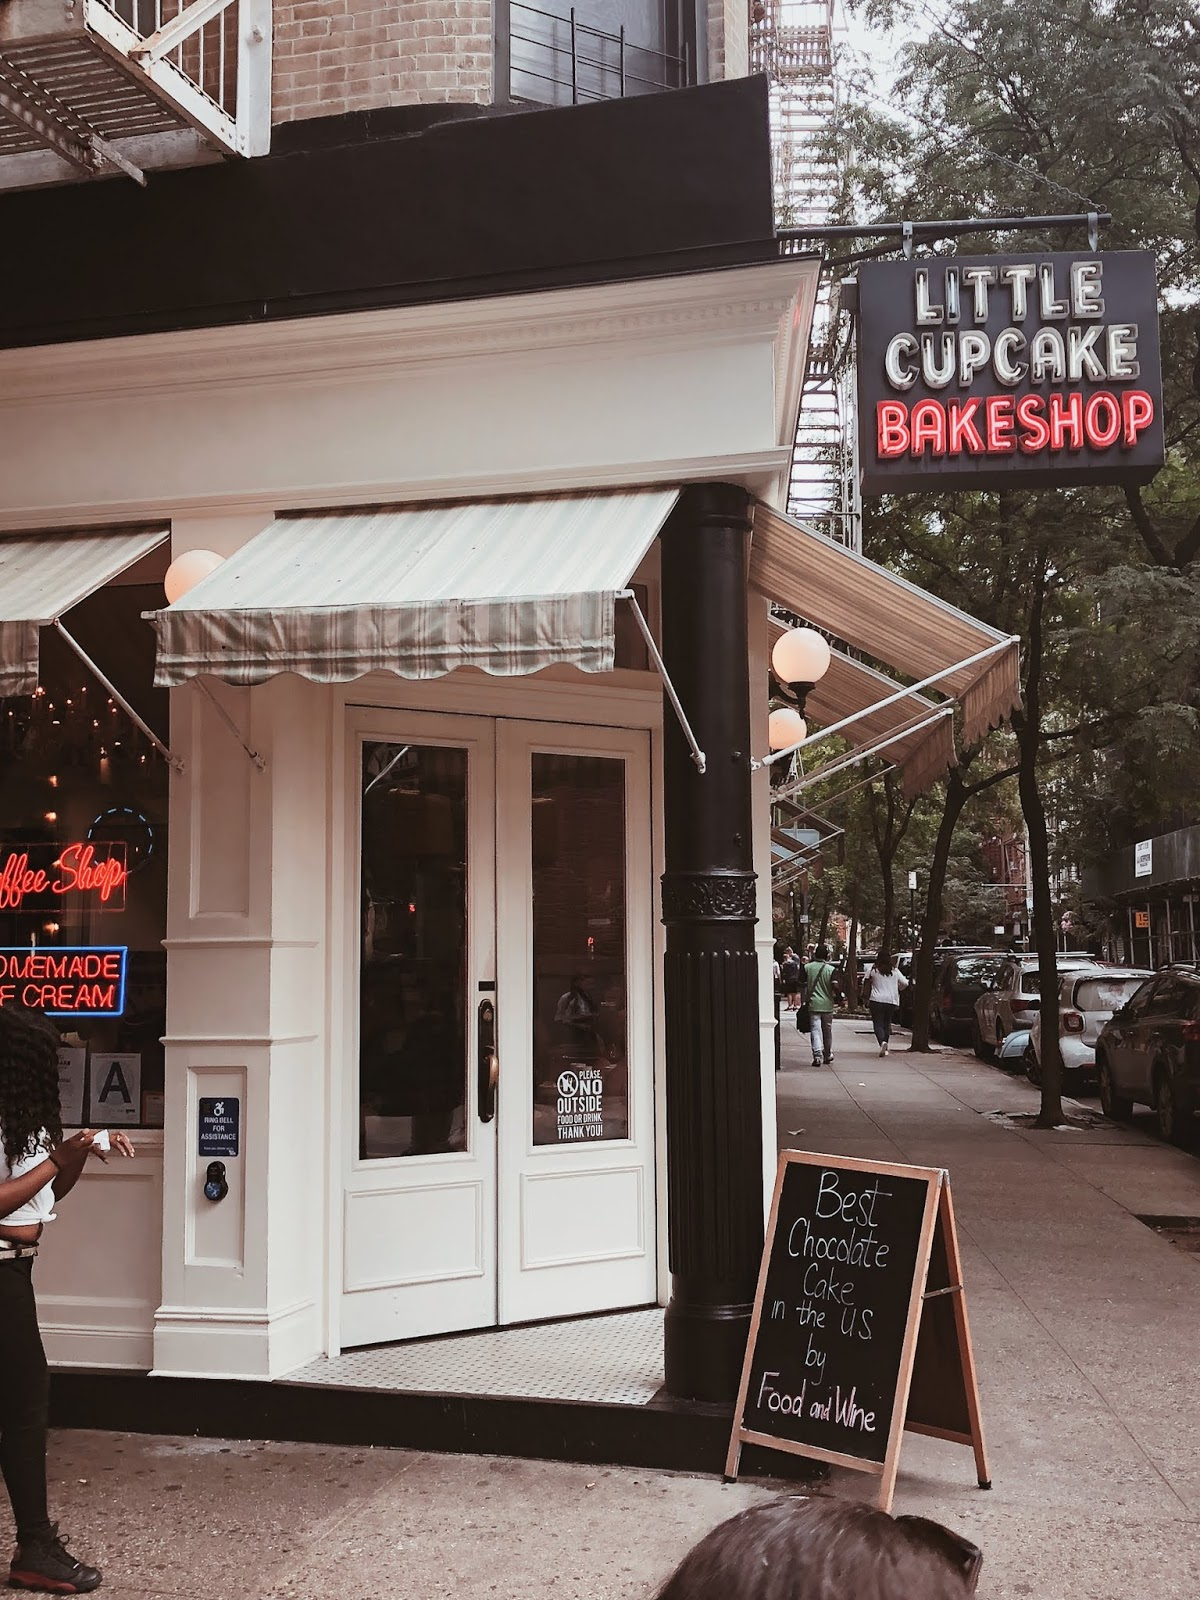 new york instagram places guide food spots instagrammable worthy little cupcake bakeshop soho 1